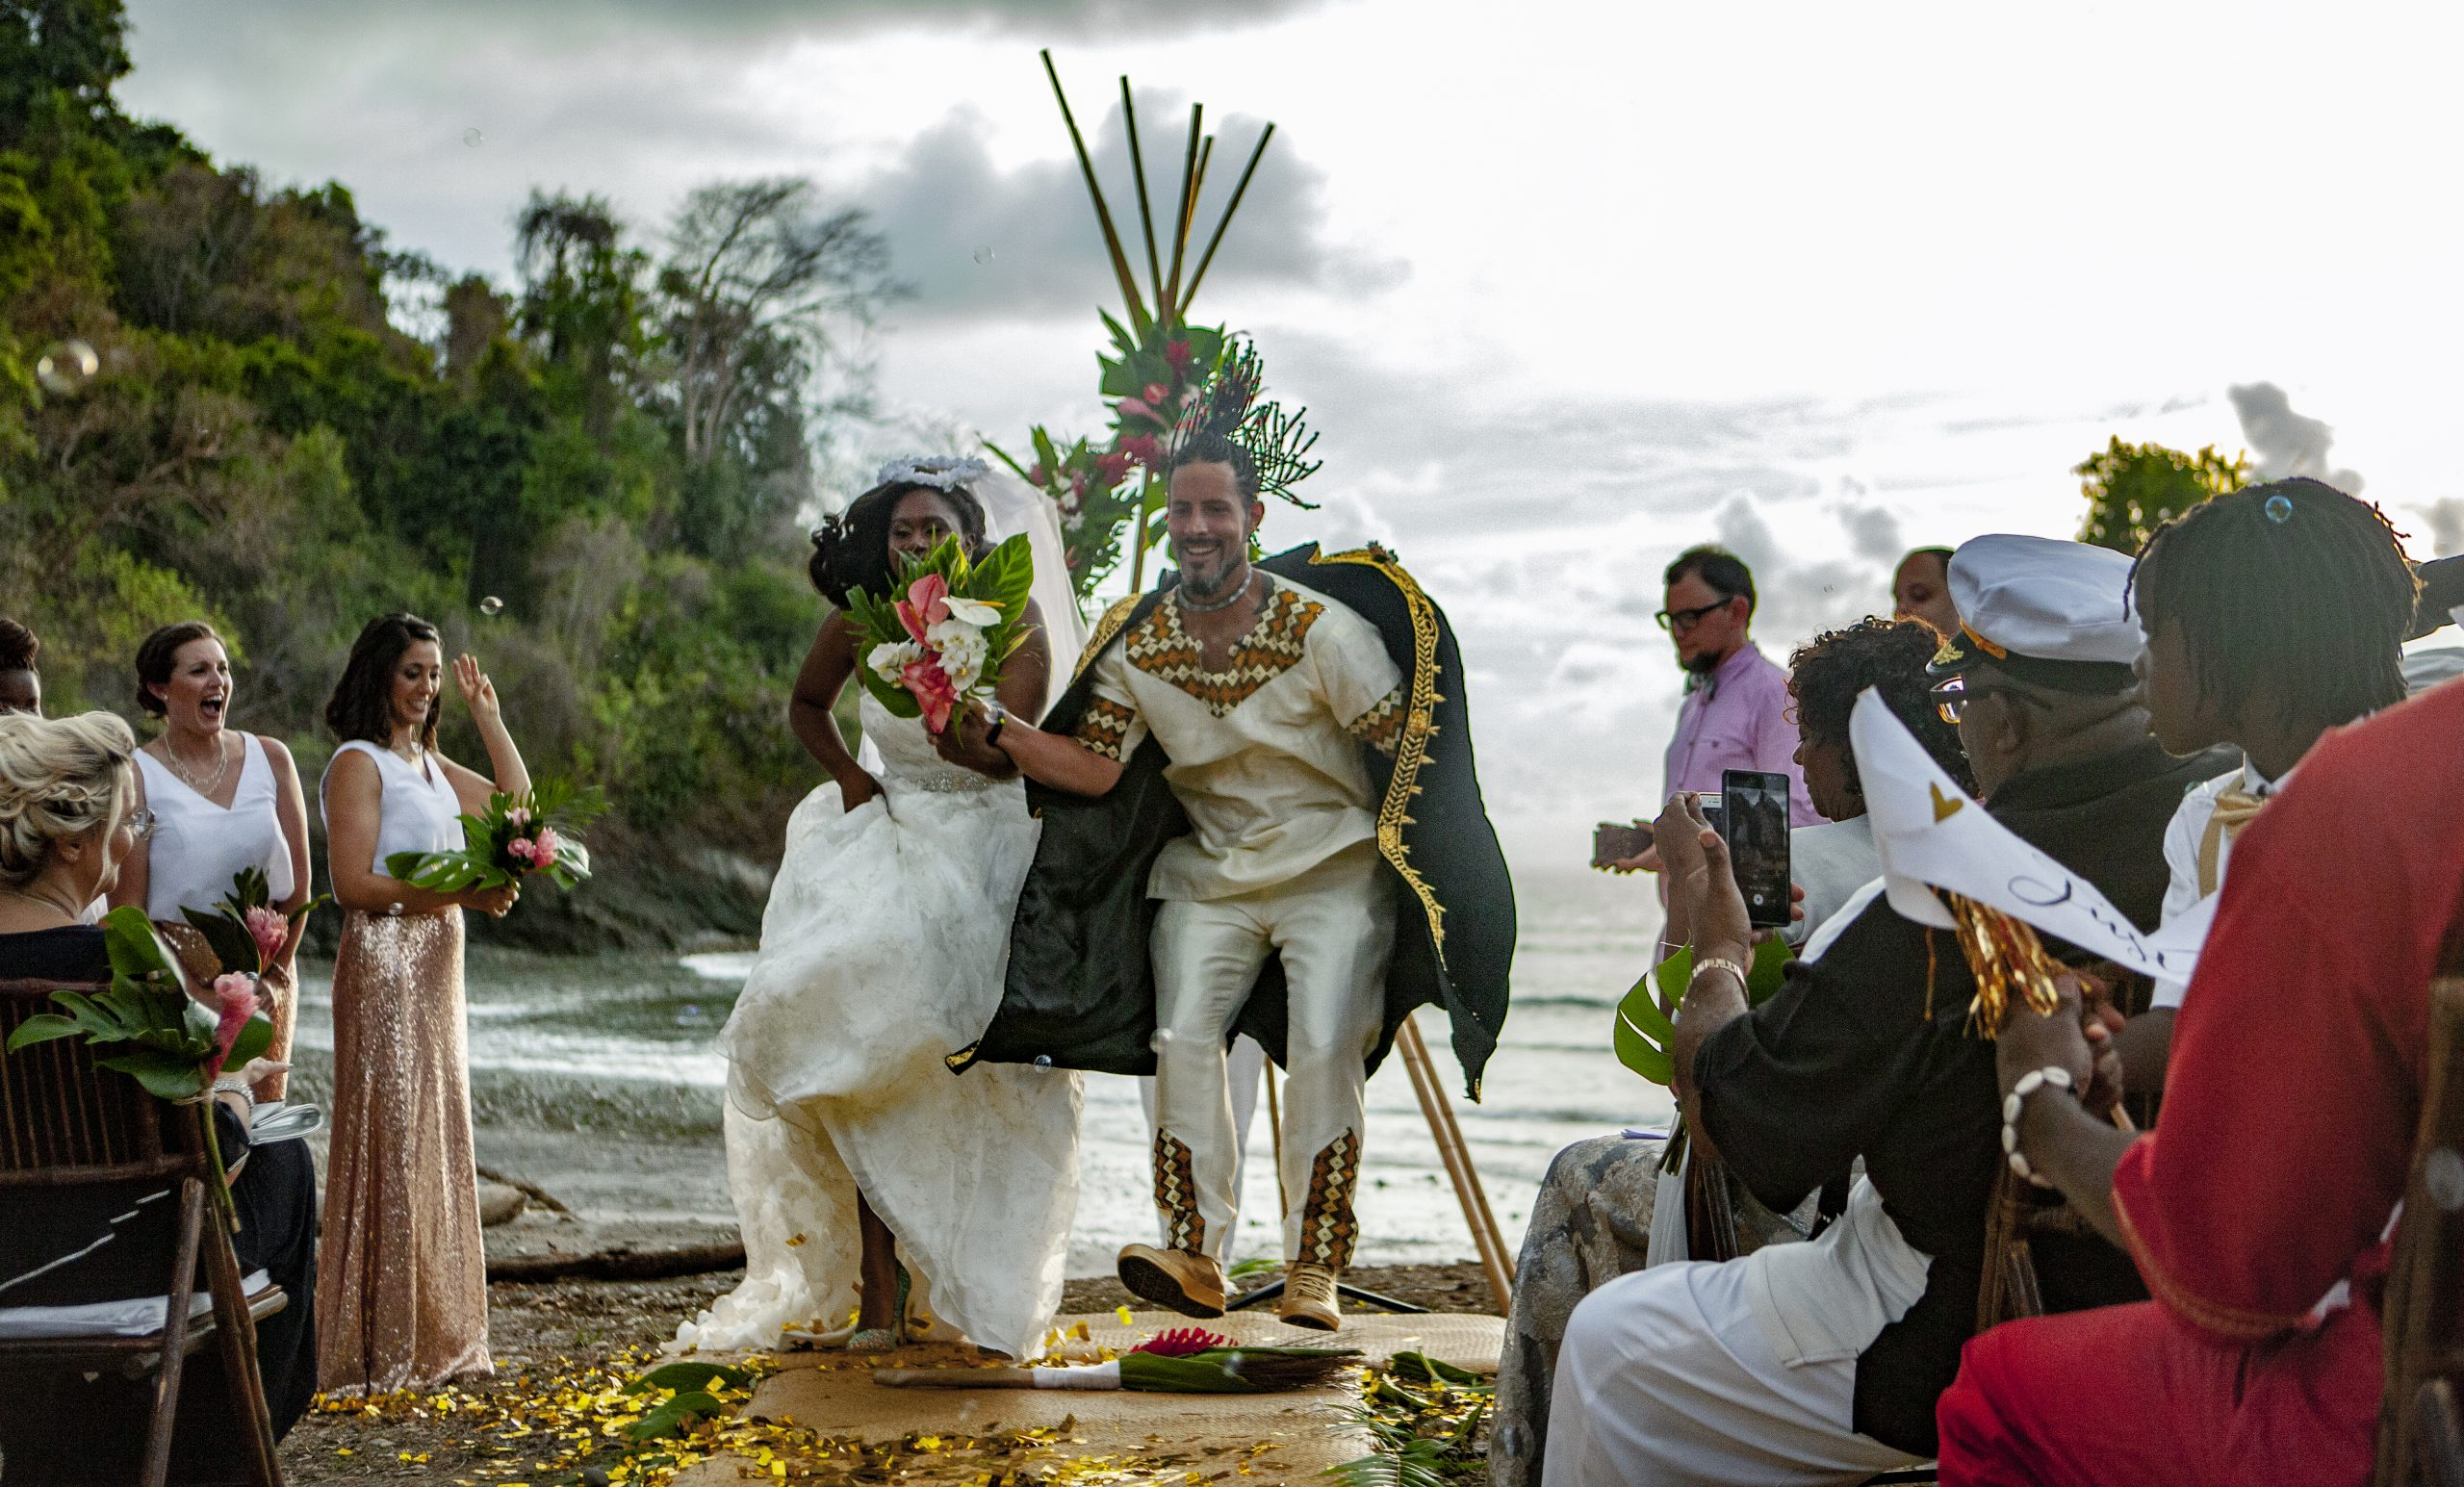 African tradition of jumping over broom stick in african wedding attire